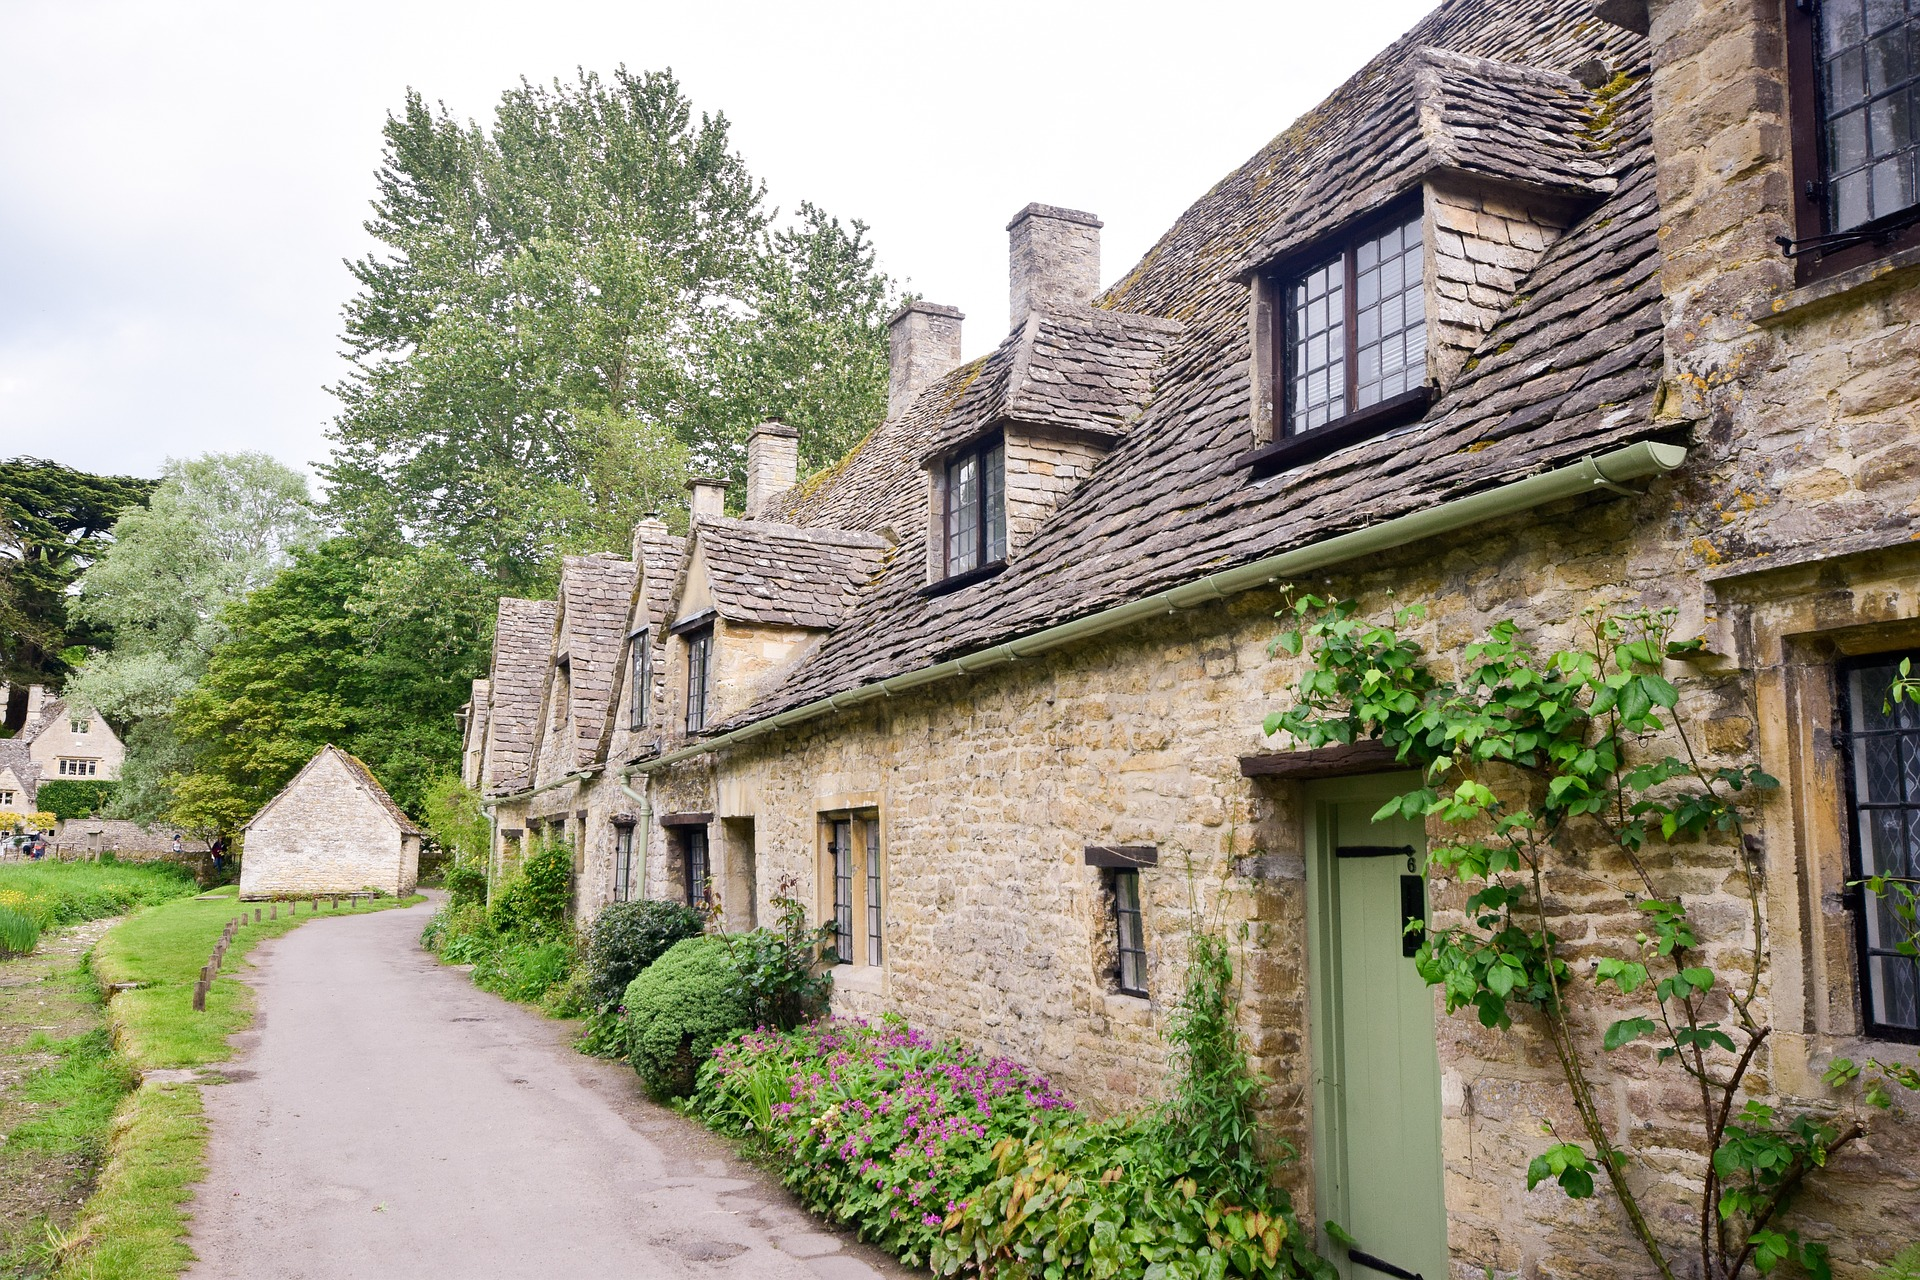 A row of houses in the Cotswolds